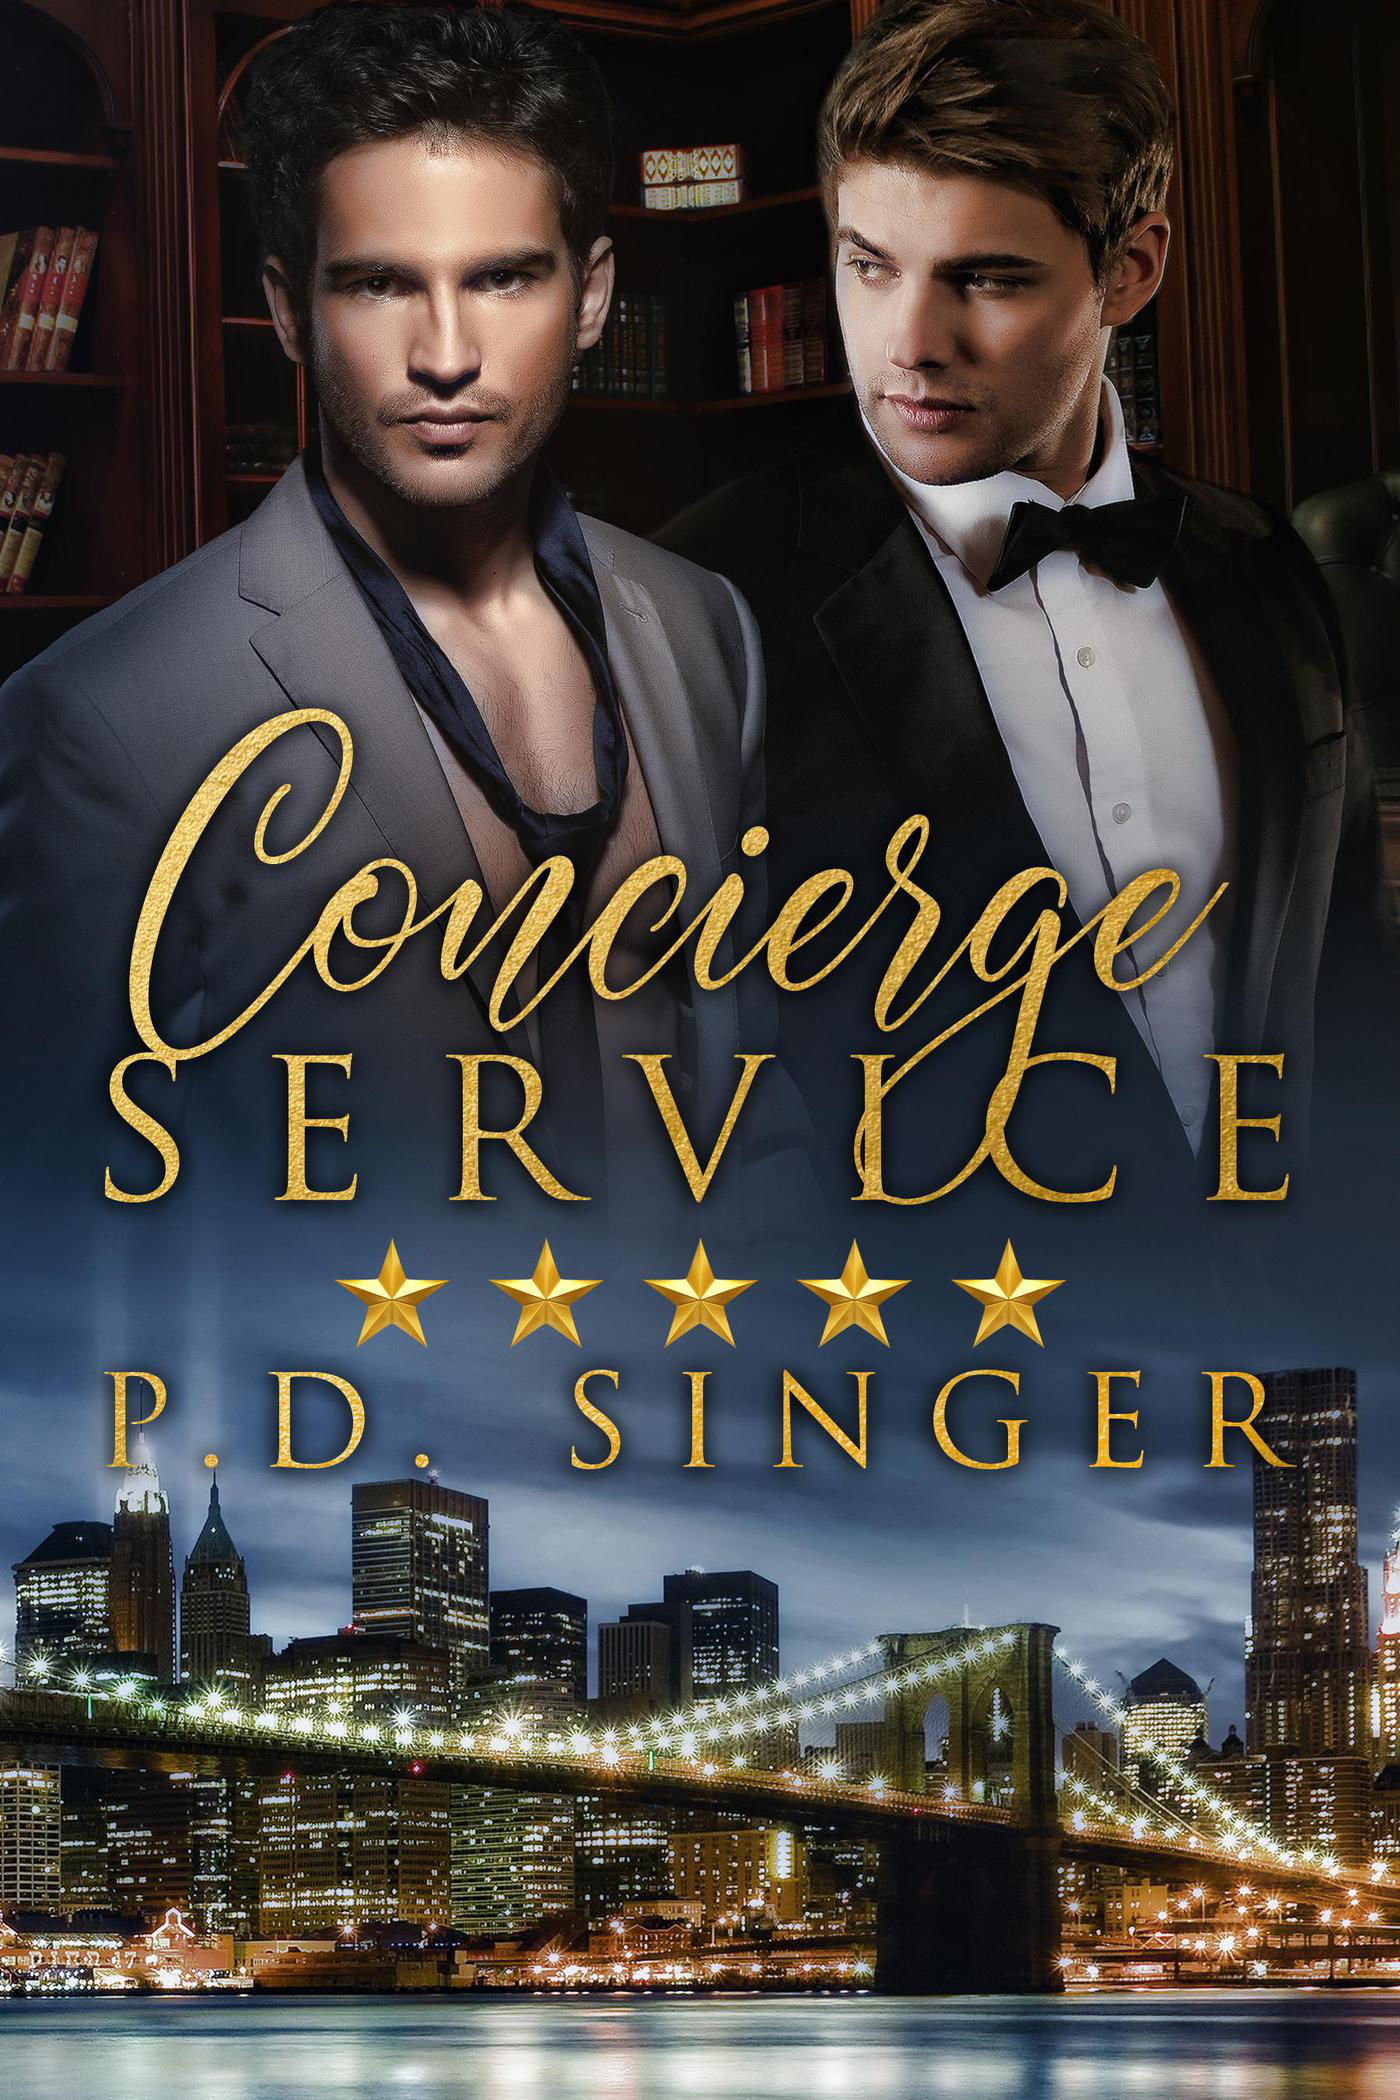 Review: Concierge Service by P.D. Singer